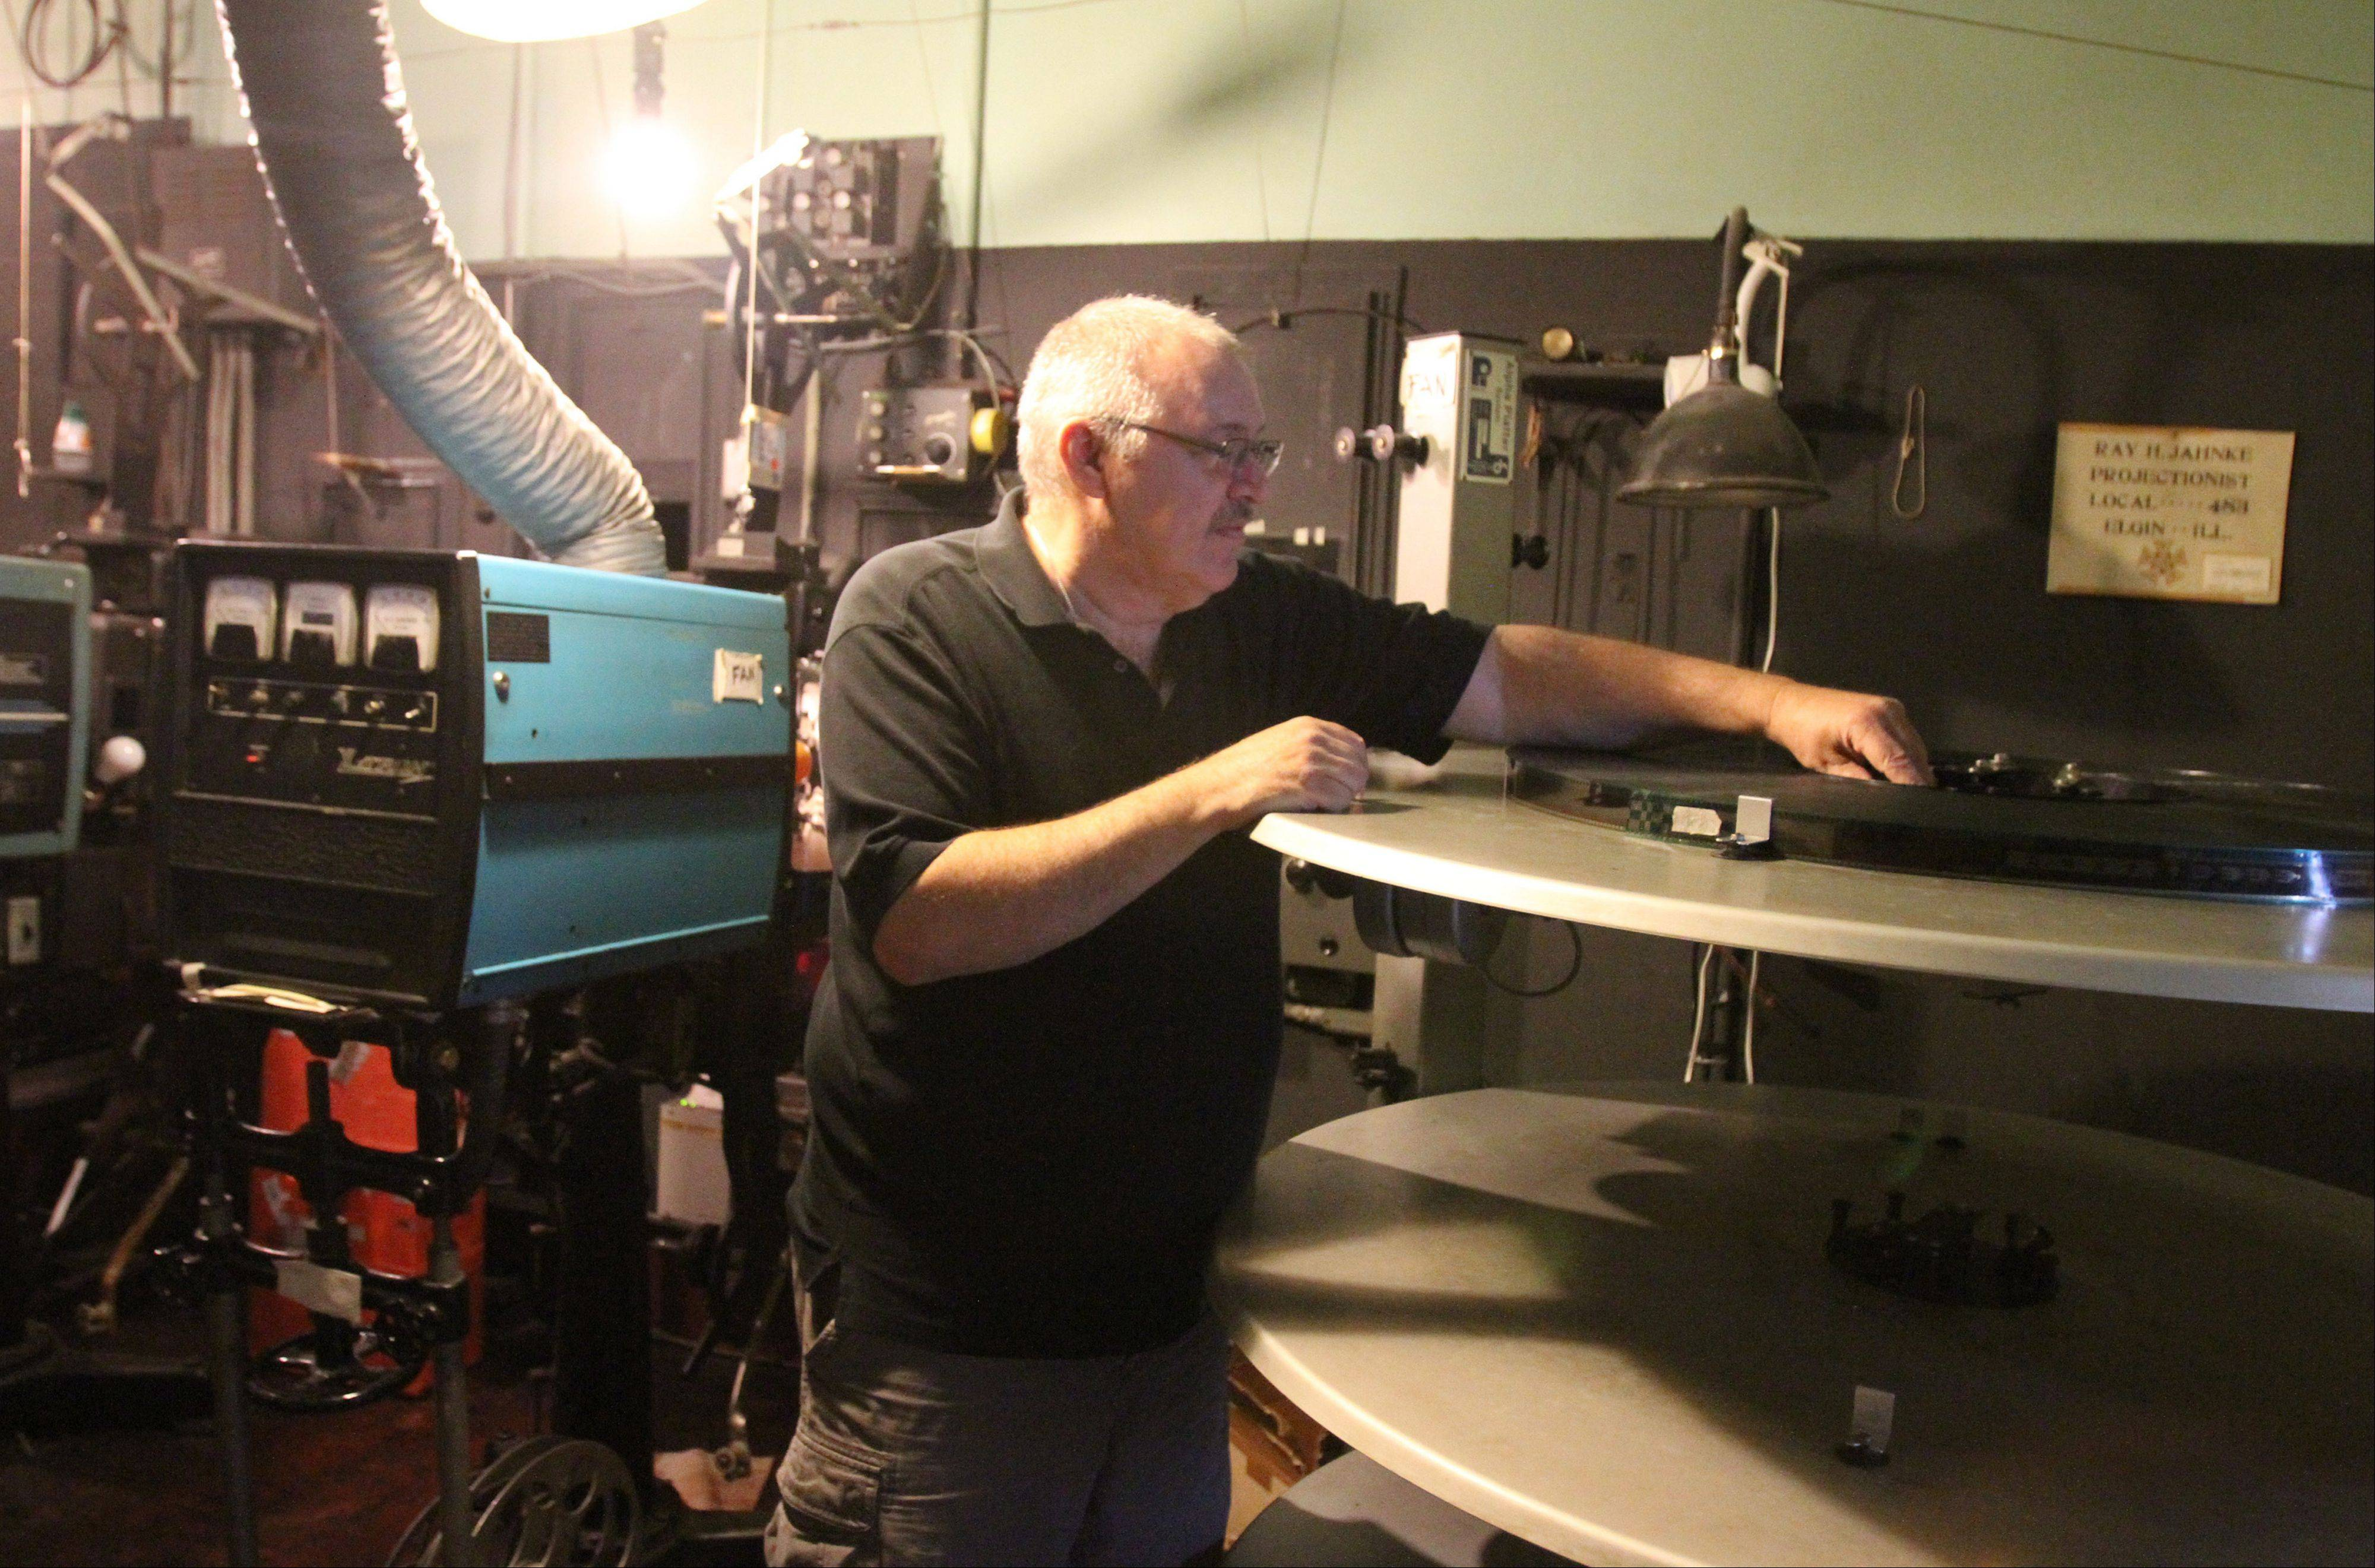 The Catlow theater co-owner Tim O'Connor demonstrates how movie film is loaded onto a giant reel table that is then fed into the 10940-50s Simplex XL film projector at the theater in Barrington. O'Connor said that allows the film projector operator to show the film as one piece versus holding a new reel one-third of the way through a movie.